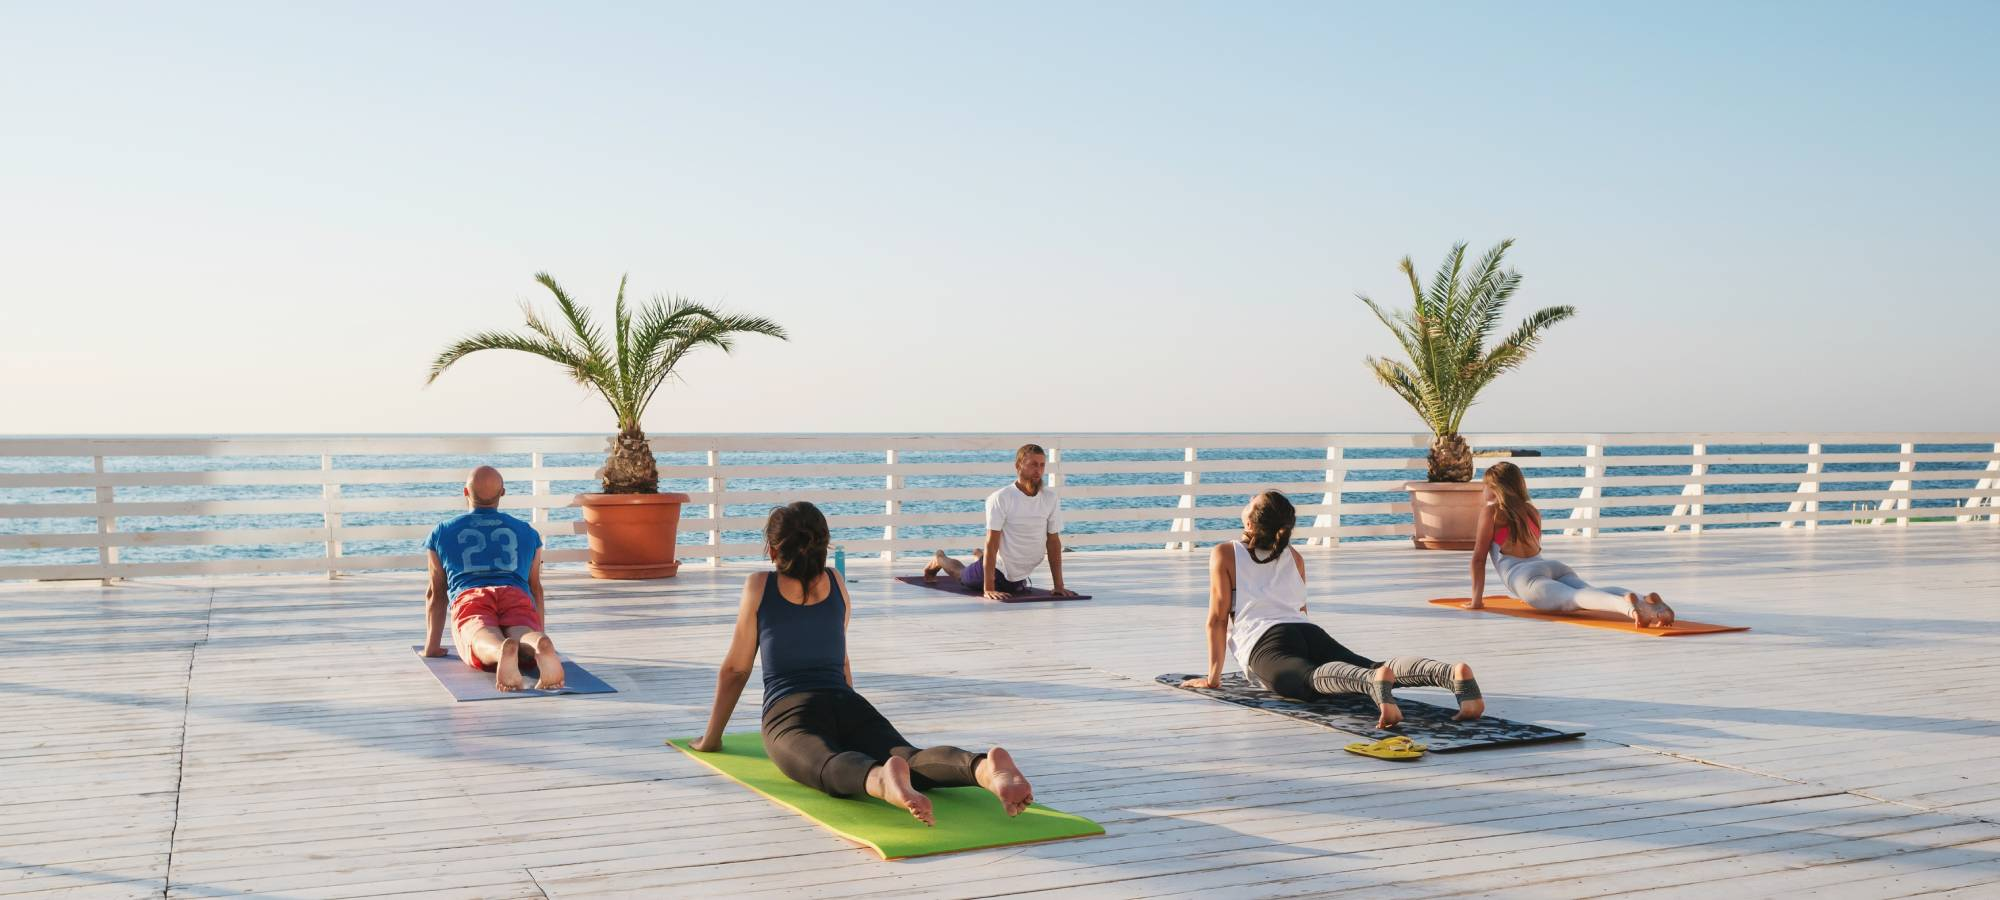 group yoga retreat overlooking water